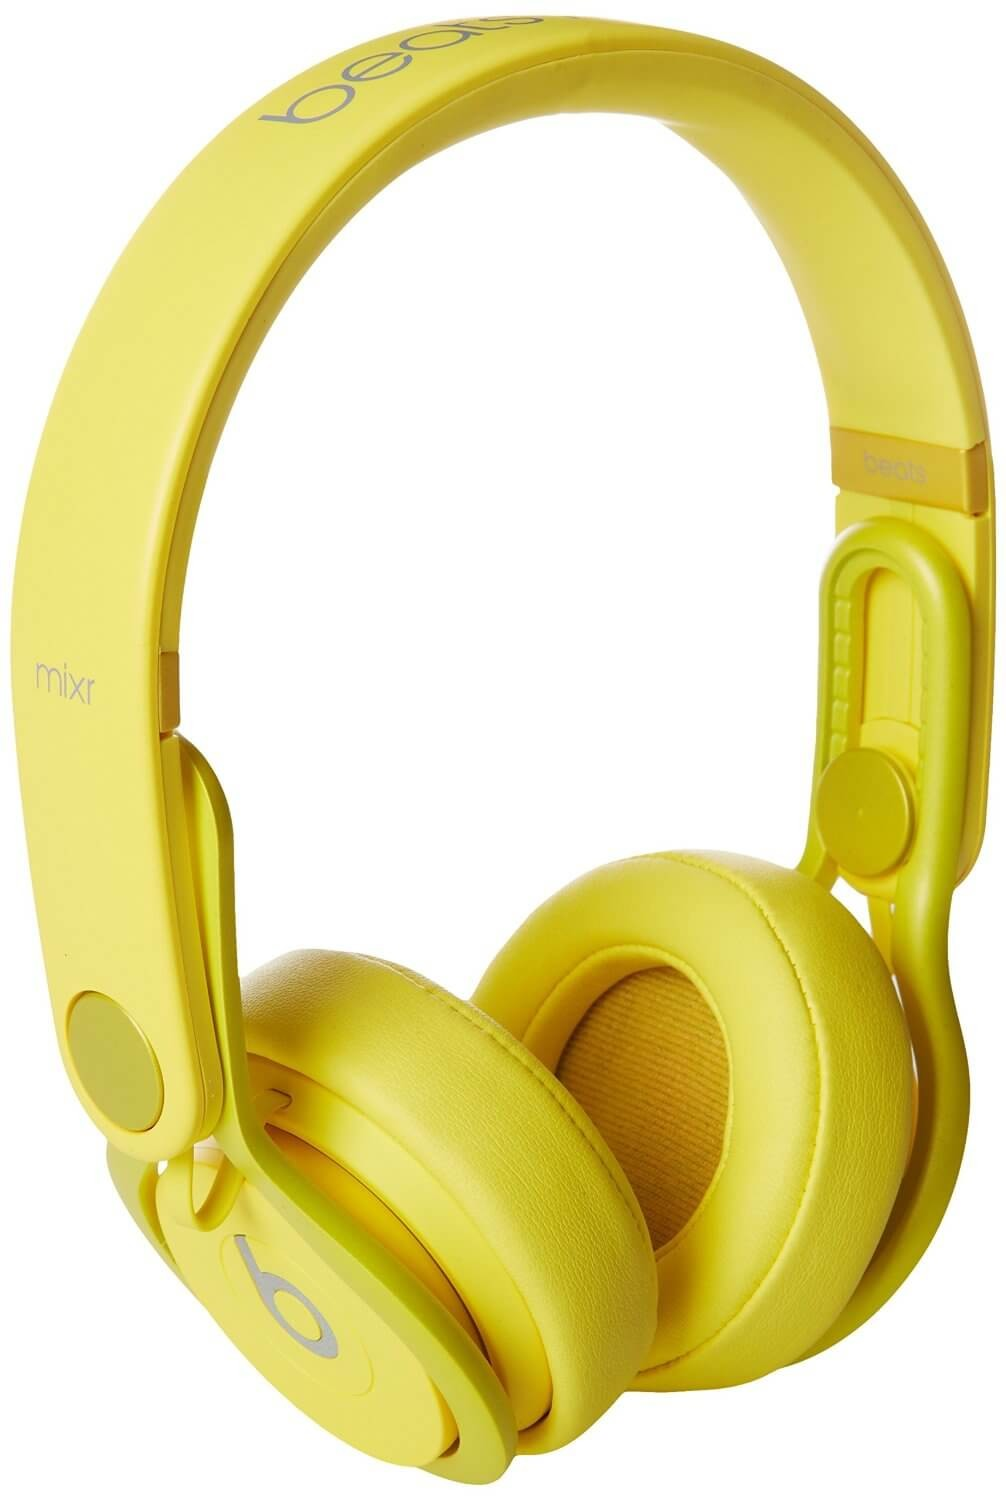 Apple Beats by Dr. Dre MIXR On-Ear Headphones - Yellow